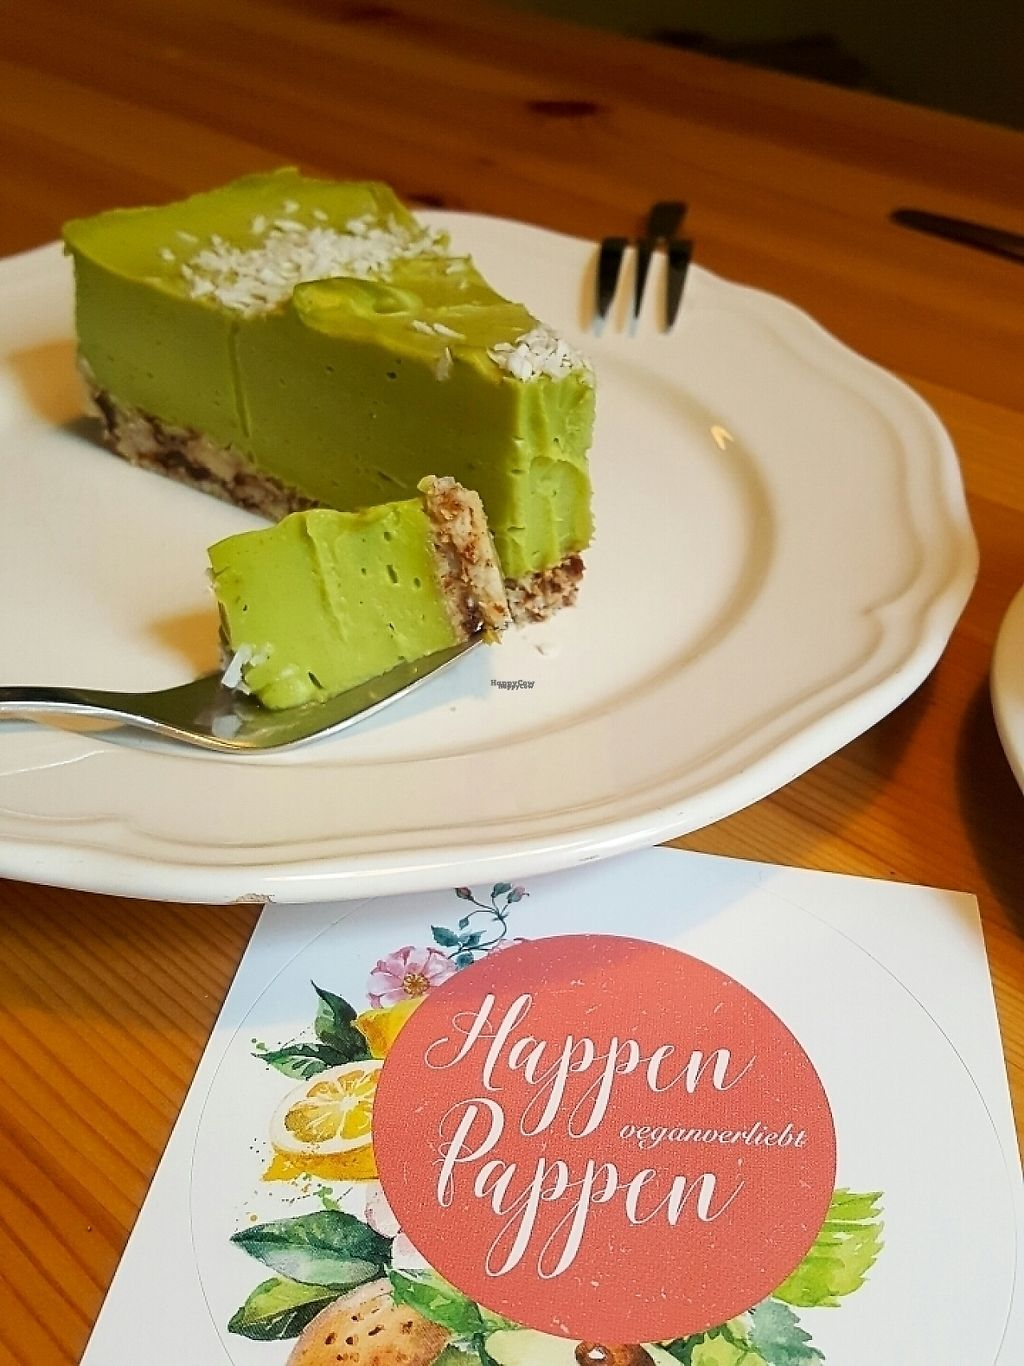 """Photo of HappenPappen  by <a href=""""/members/profile/veganverayo"""">veganverayo</a> <br/>All the cakes are amazing. I really love this rawvegan avocado lime cocos cake  <br/> April 14, 2017  - <a href='/contact/abuse/image/41221/247780'>Report</a>"""